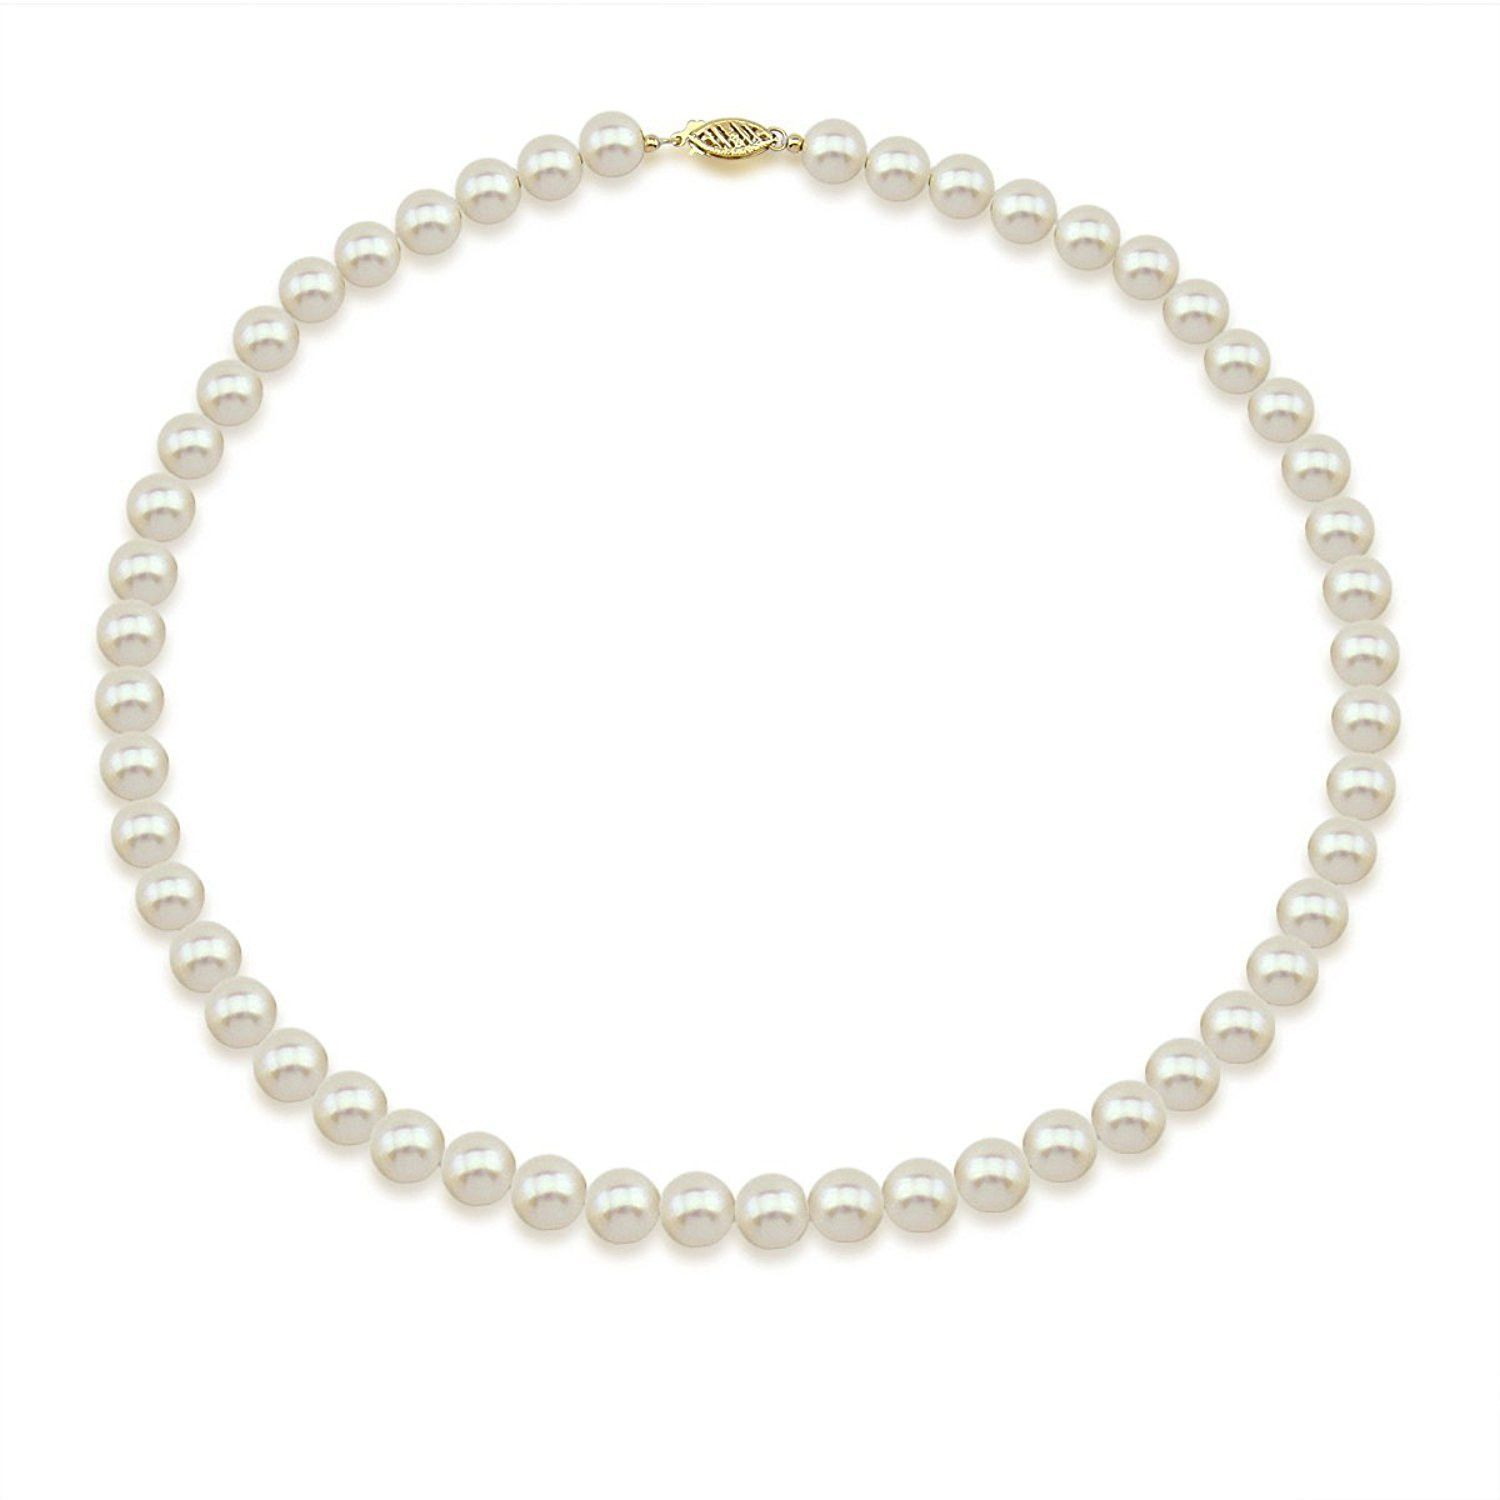 18 Length AAA Quality 14K Yellow Gold 6.5-7.0mm White Freshwater Cultured Pearl Necklace Earrings Set